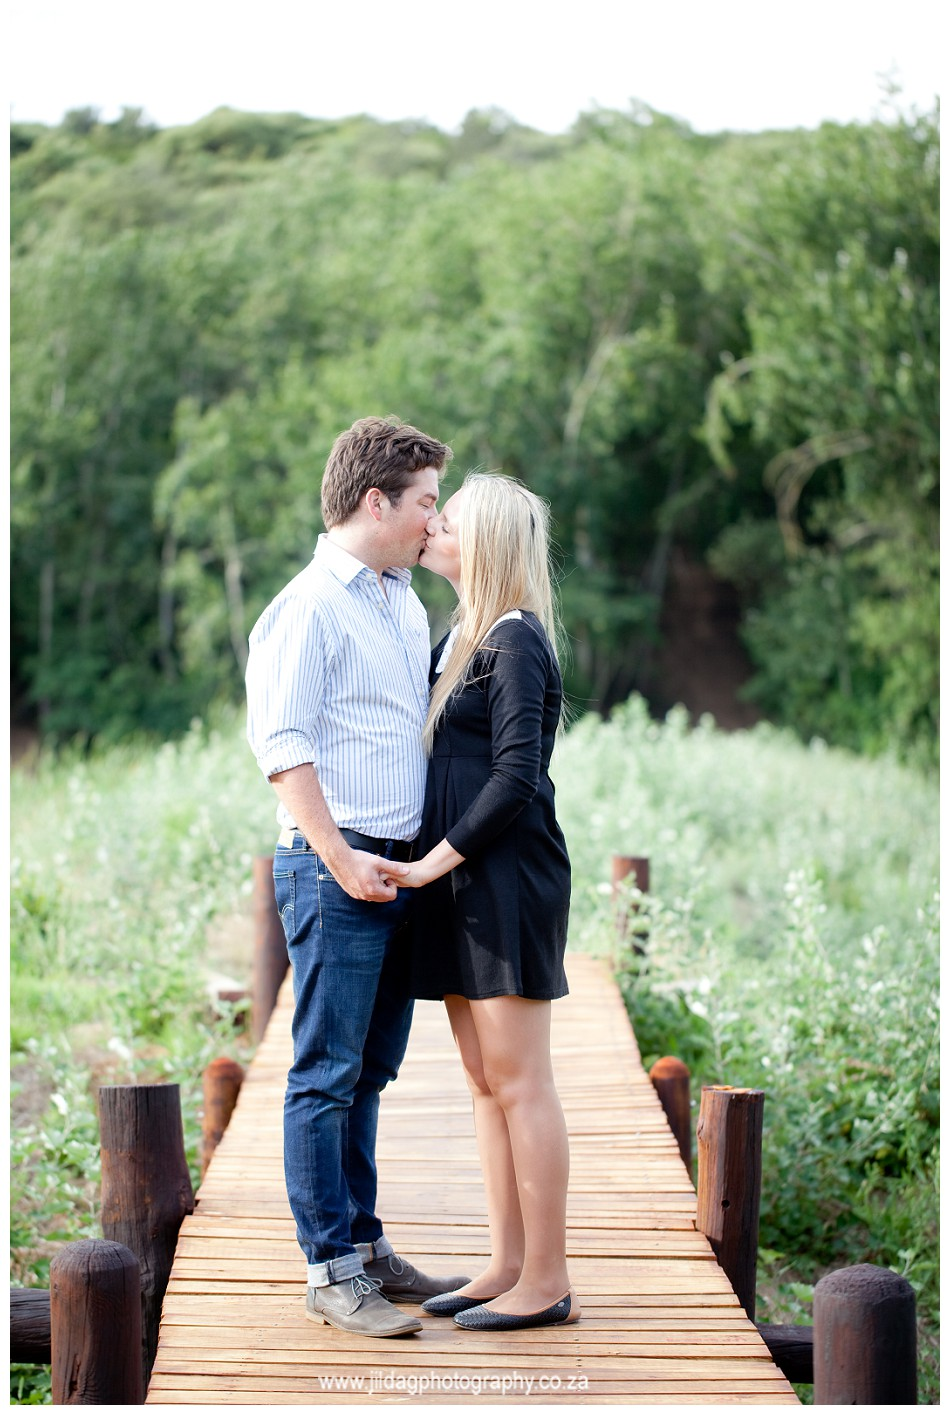 Engagement - Cape Town - Photographer - Jilda G (36)